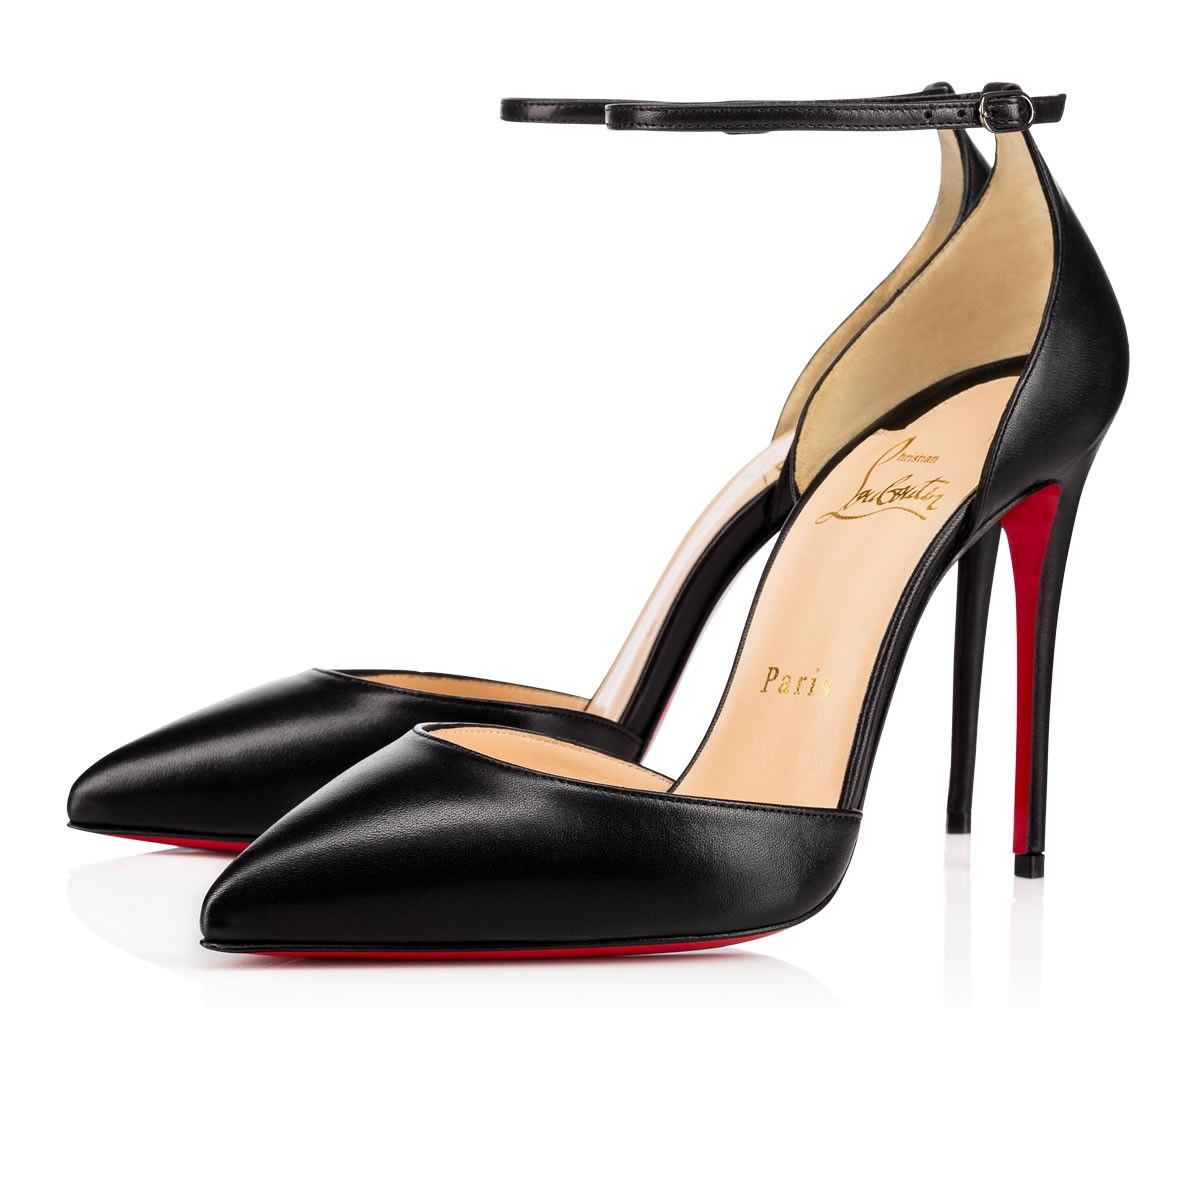 abf1b389f0f CHRISTIAN LOUBOUTIN Uptown 100 Black Leather - Women Shoes ...